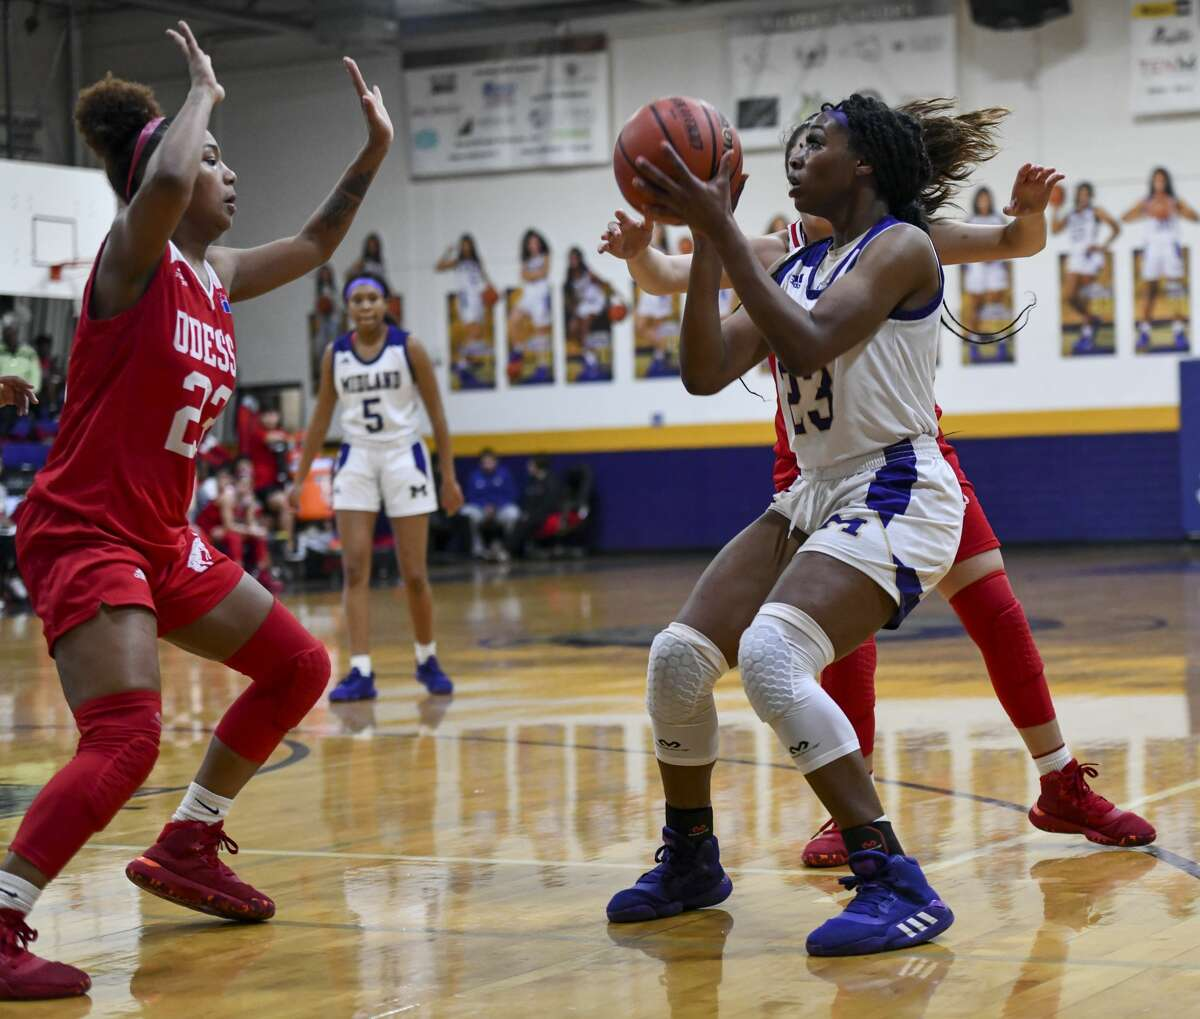 Midland High's Kobe Powell (23) shoots the ball Odessa High's Kazyiah Hicks comes from the basket to attempt to guard Powell on Tuesday, Jan. 28, 2020 at Midland High School.